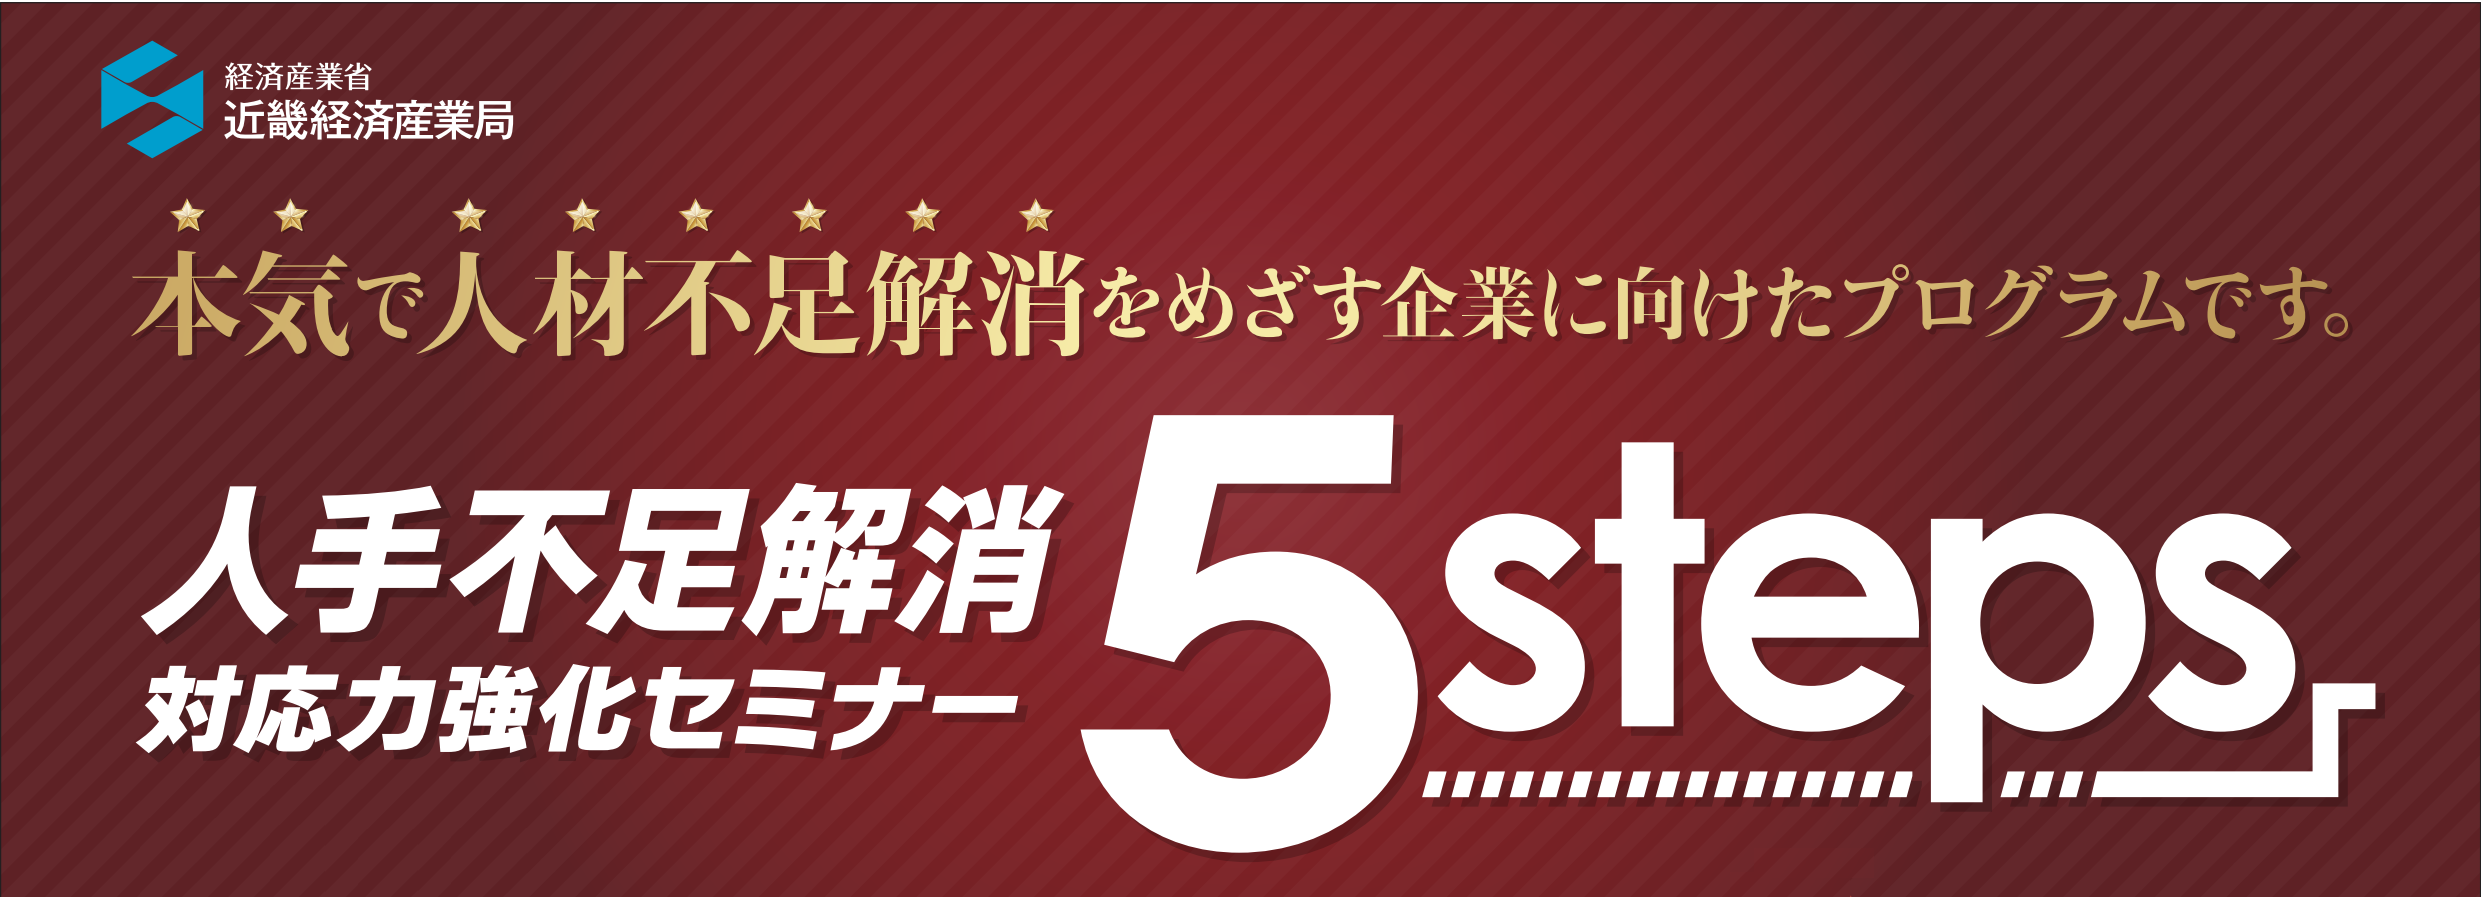 5steps_A4_0613_01.png